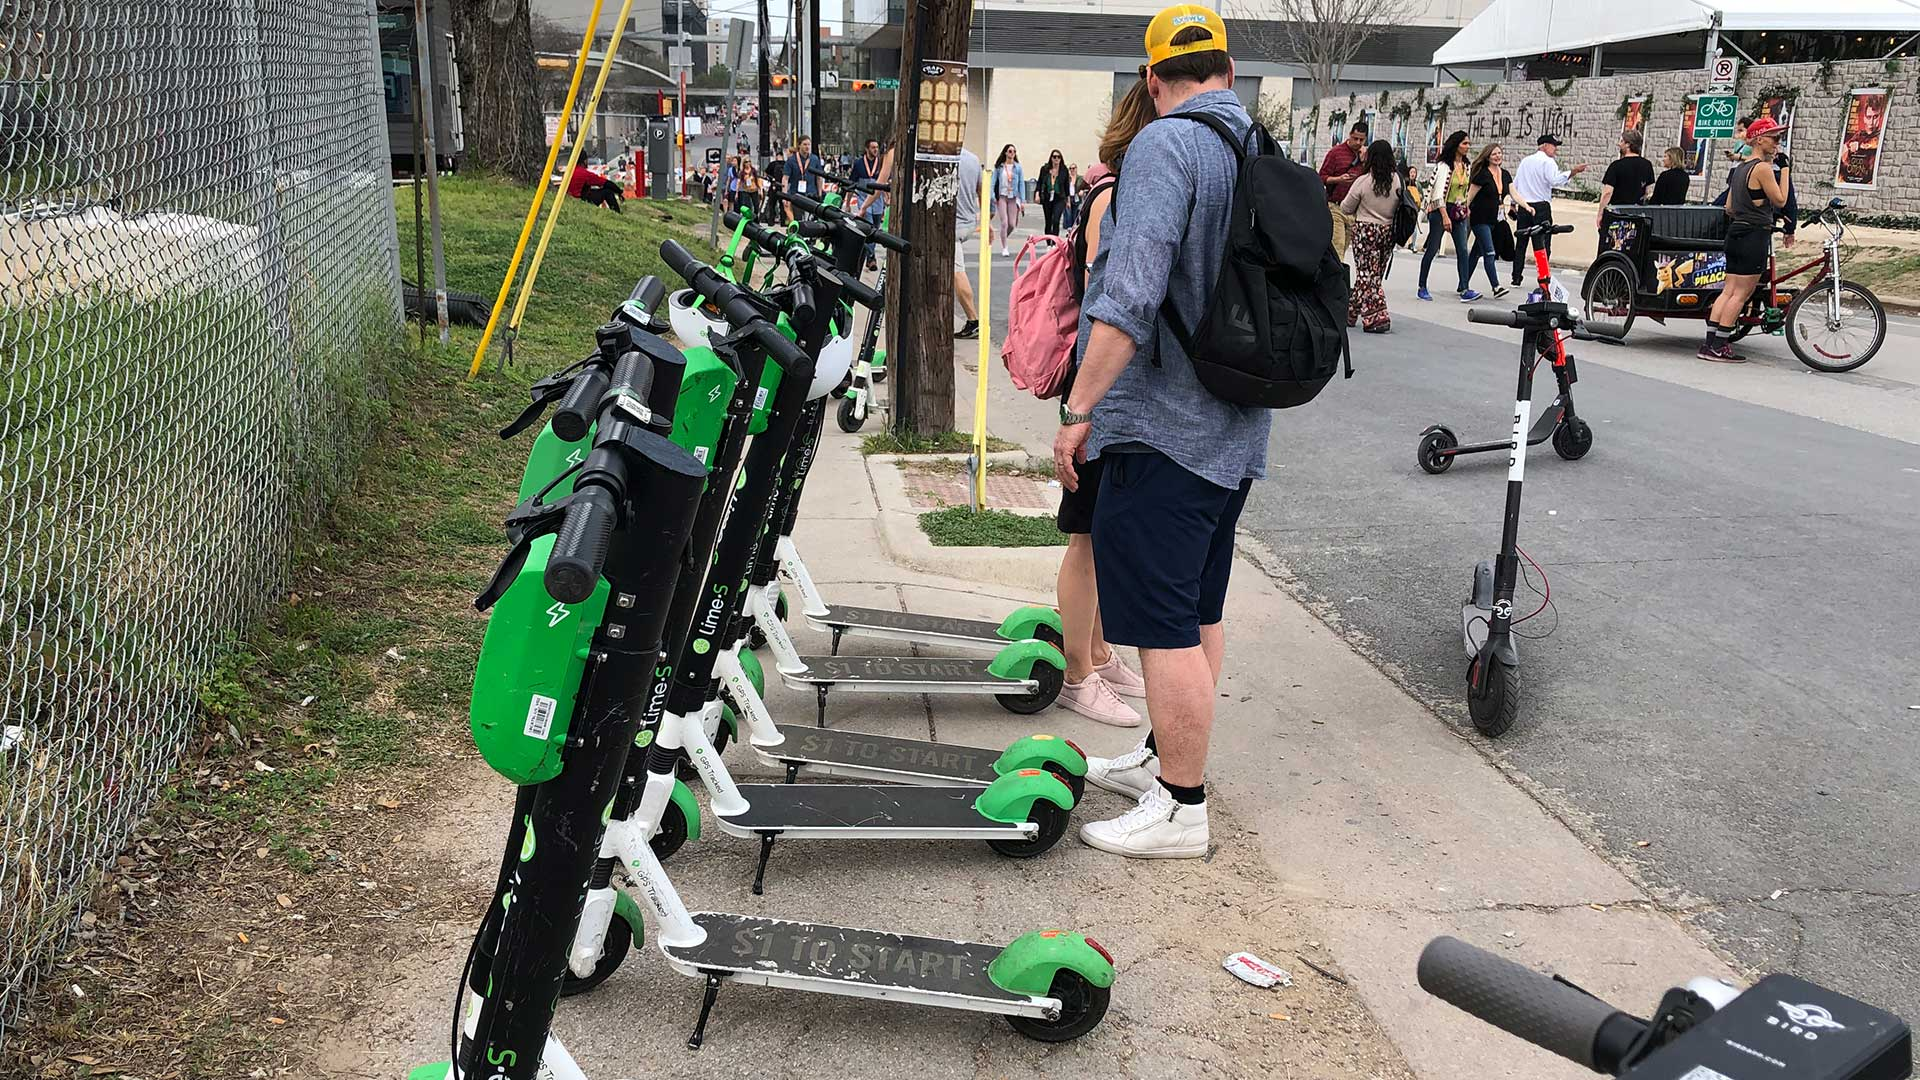 Scooters-Return-to-the-Twin-Cities-Just-In-Time-For-Everyone-to-Start-Complaining-About-Them.jpg